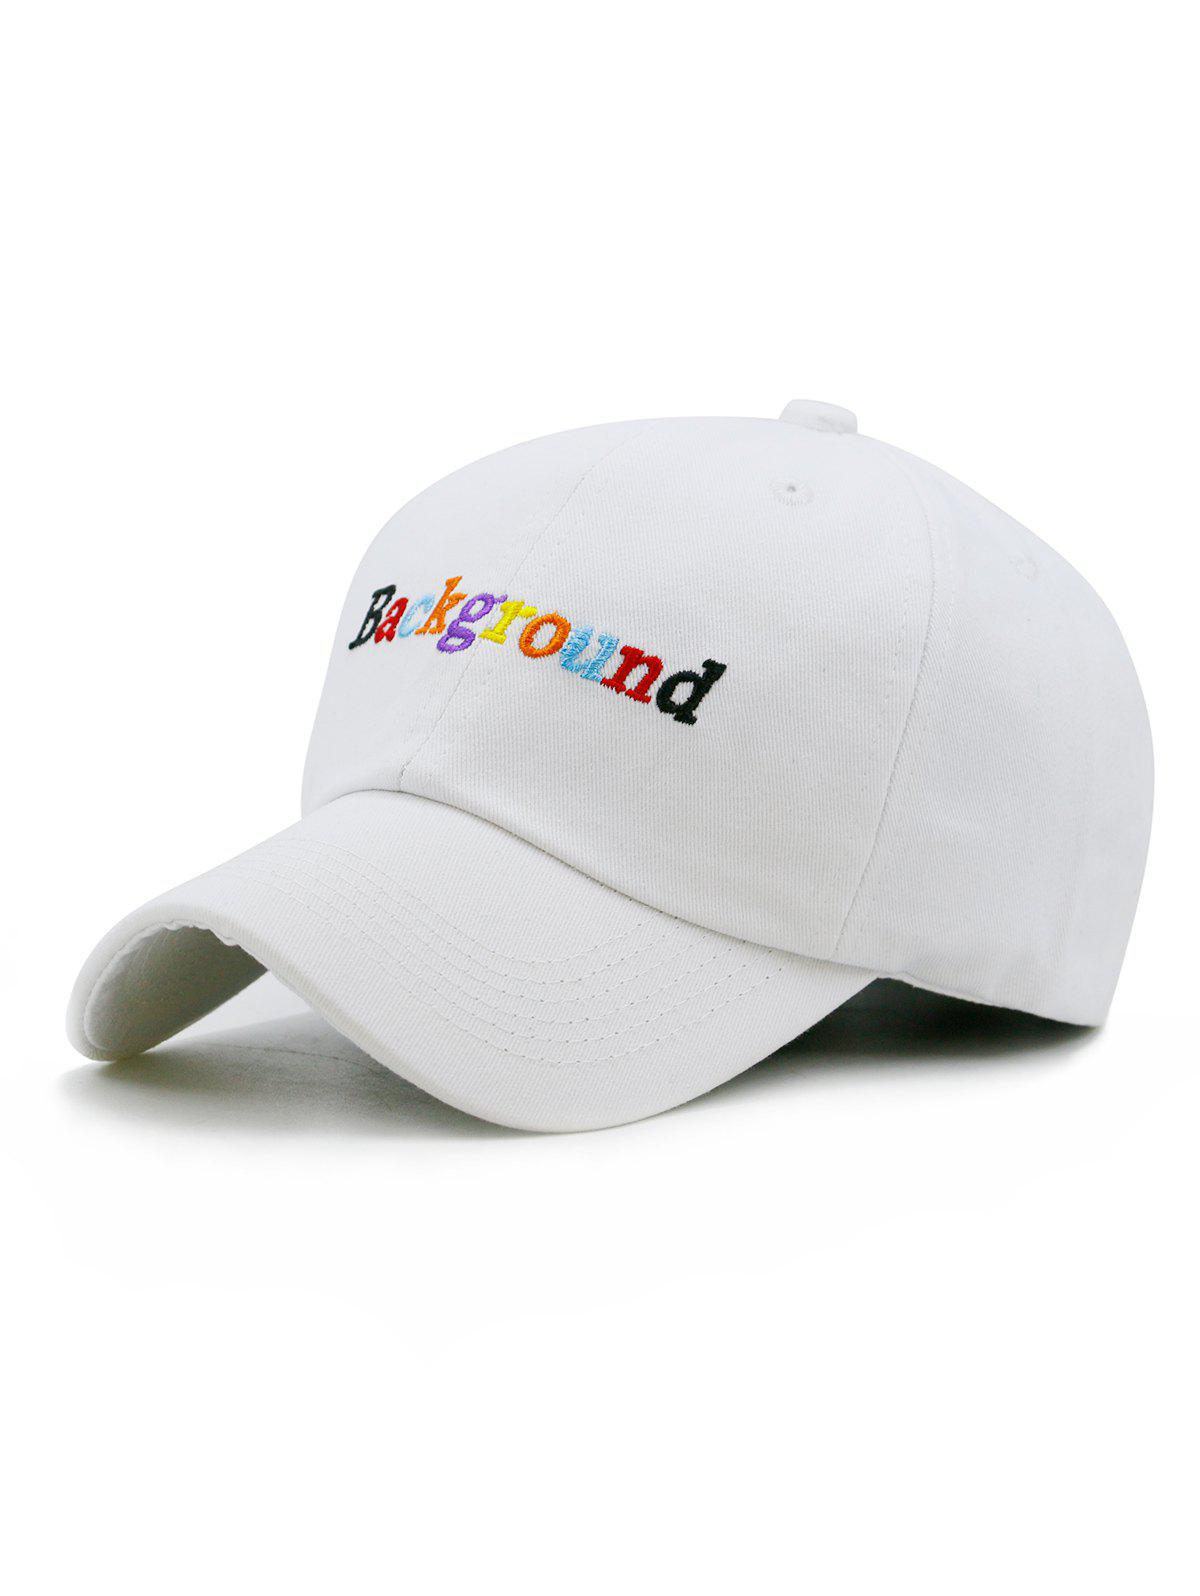 Latest Colored Background Embroidery Baseball Cap